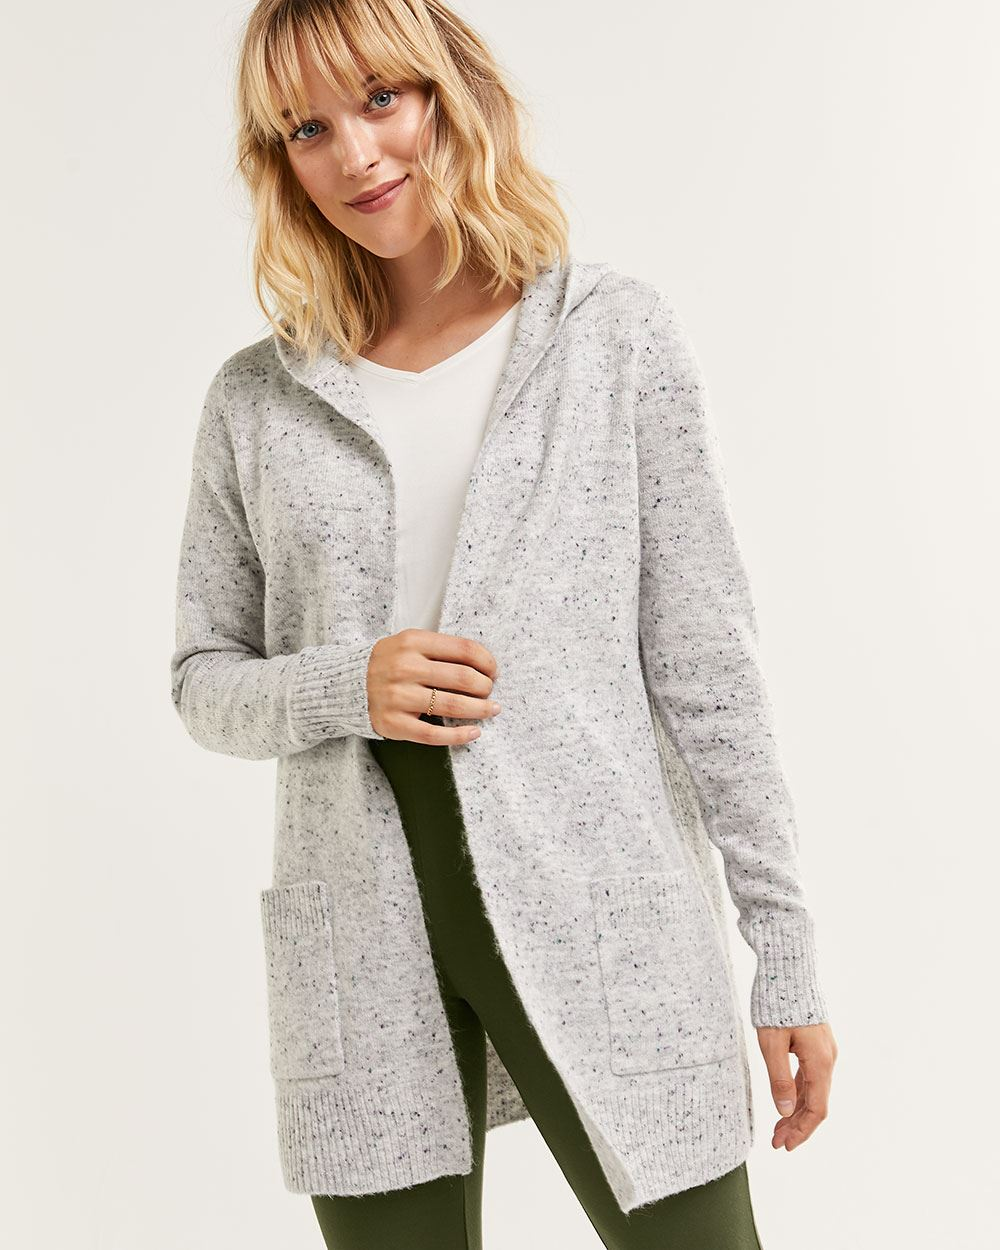 Hooded Nep Yarn Cardigan with Pockets